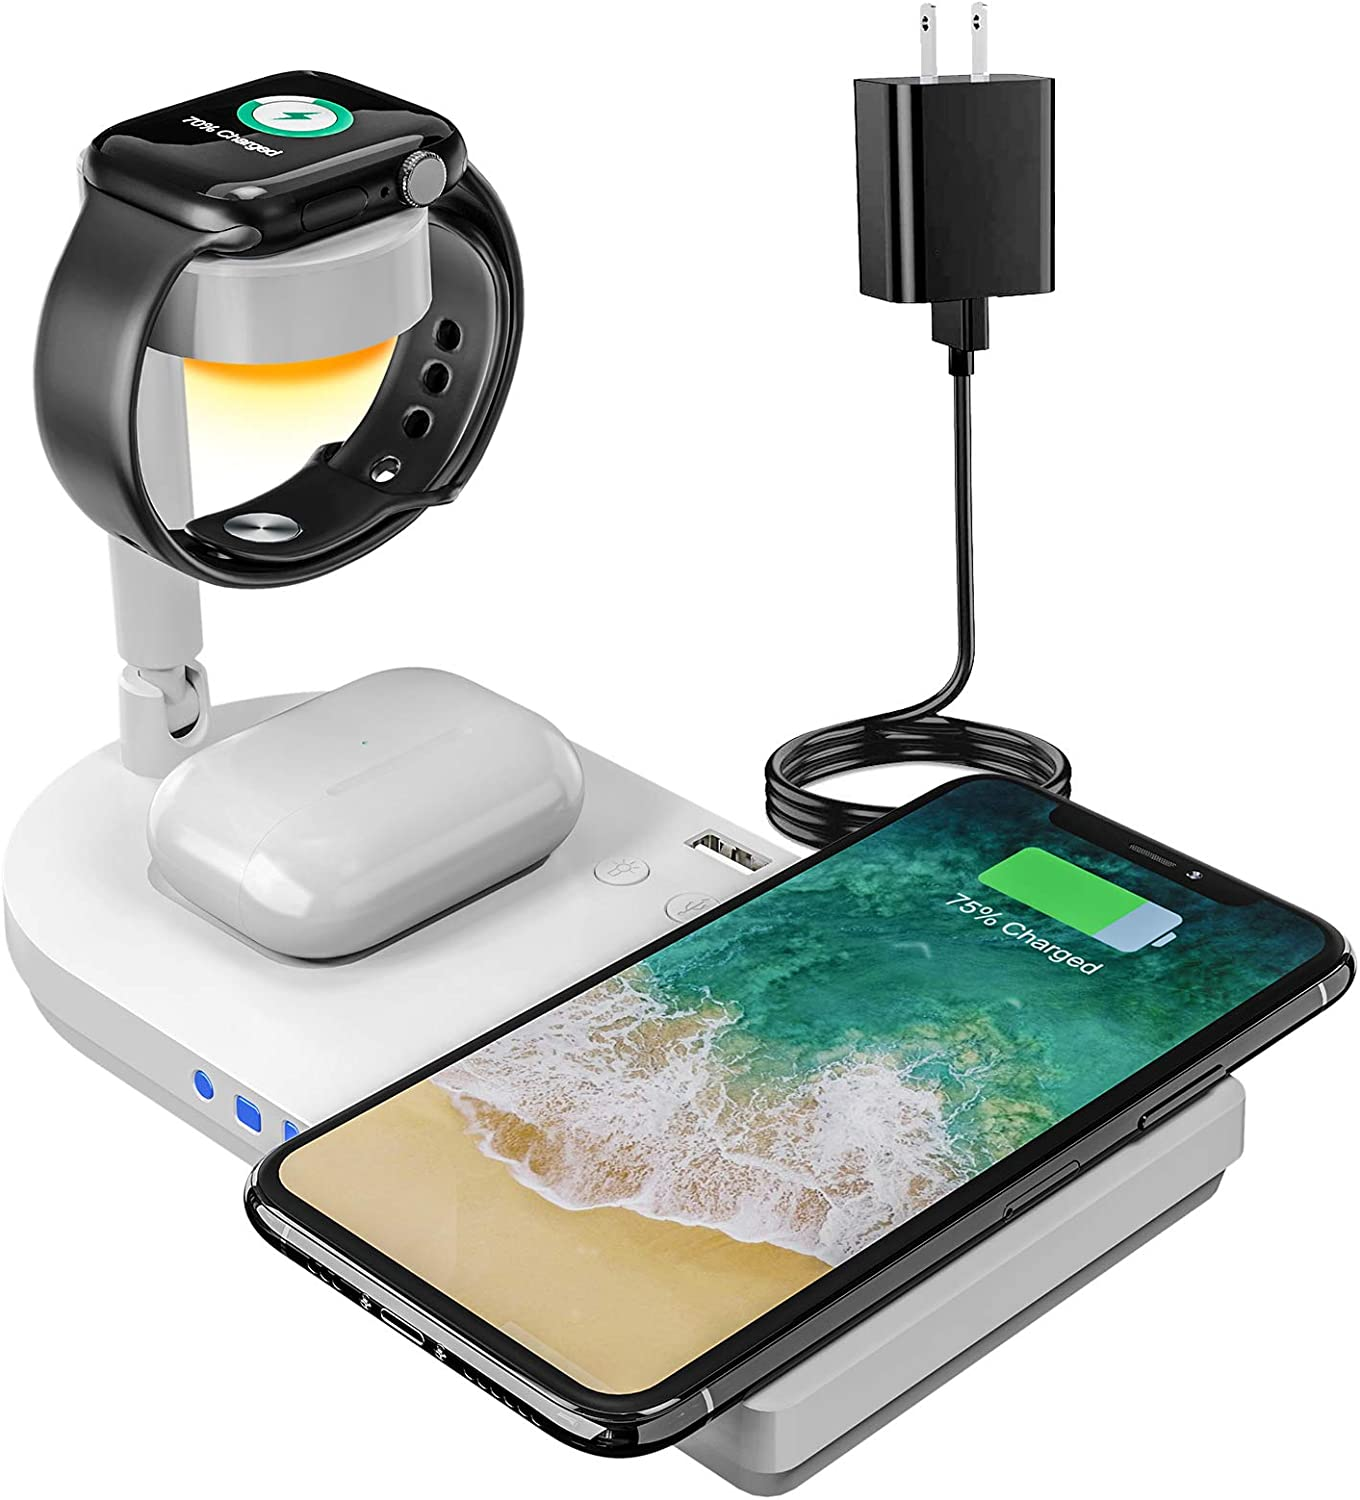 Upgraded Wireless Charging Station, 4 in 1 Qi-Certified 15W Fast Charging Dock with Bedside Lamp, Compatible for iPhone 12/11 Series, AirPods, Apple Watch Series SE/6/5/4/3/2/1 (White)